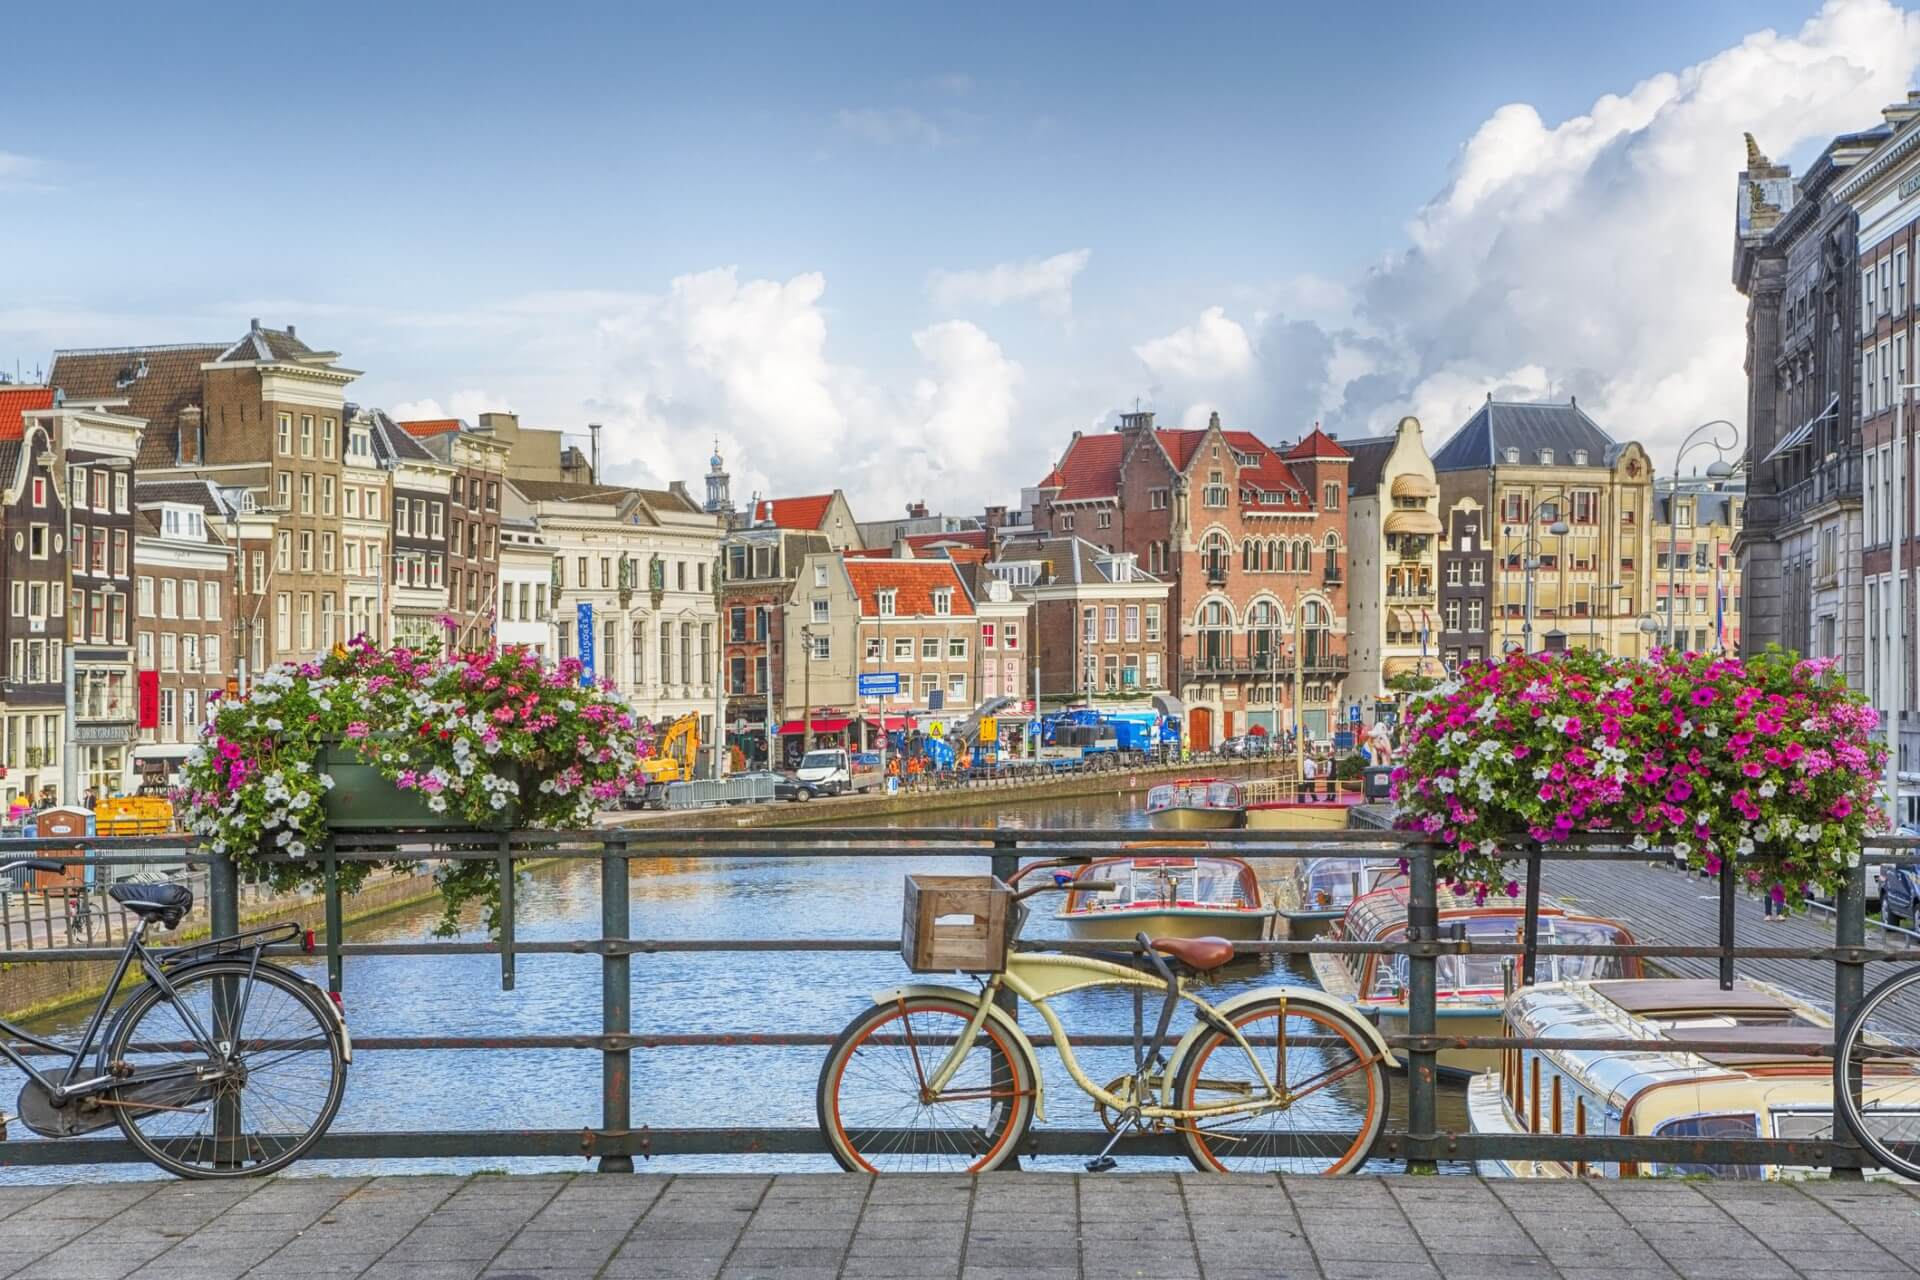 Bikes on a bridge over a canal, potted flowers on the railings.